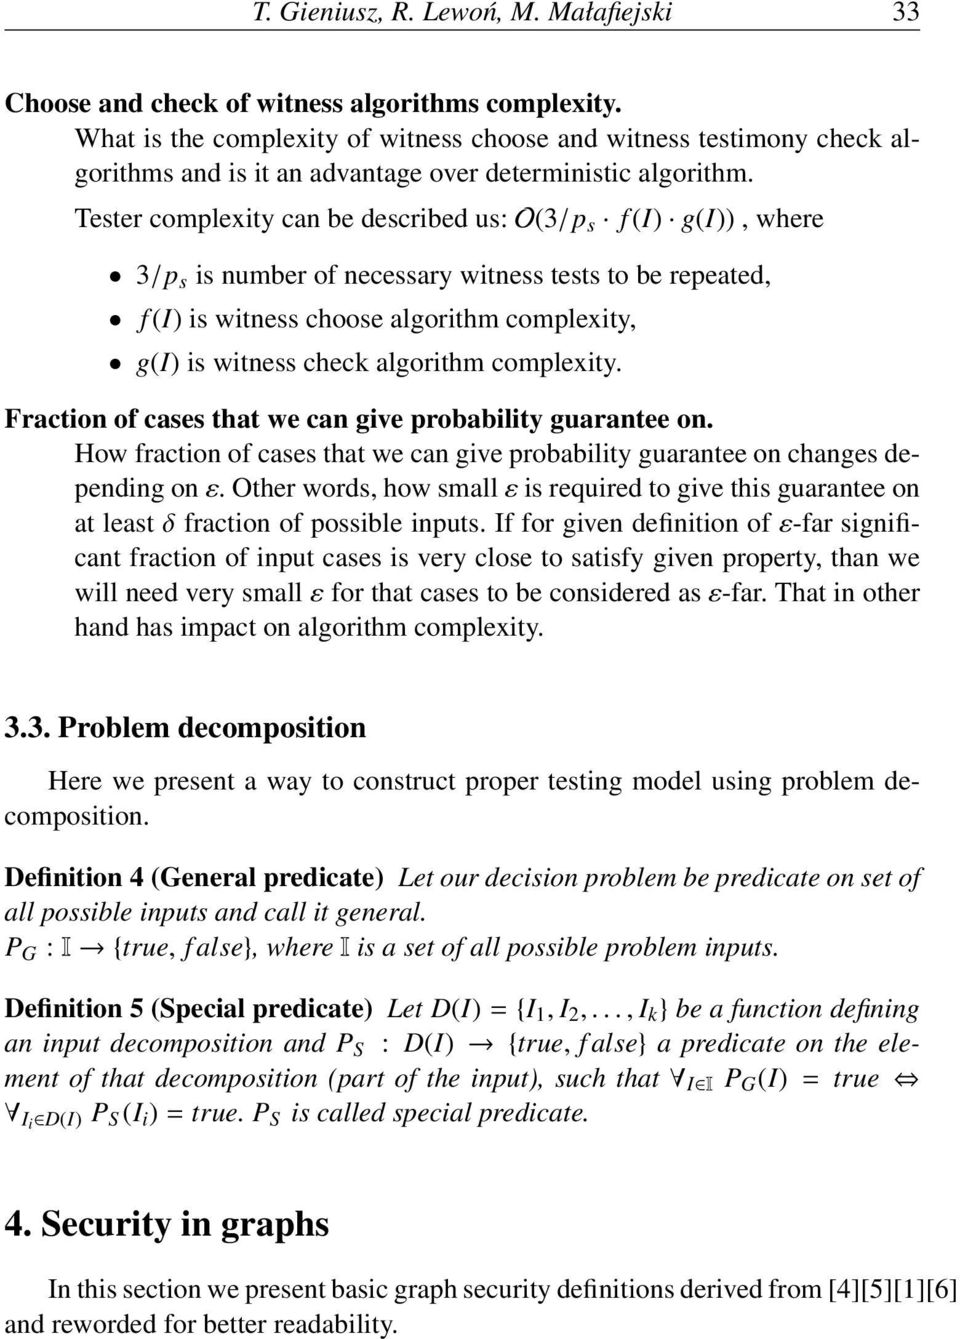 Tester complexity can be described us: O(3/p s f (I) g(i)), where 3/p s is number of necessary witness tests to be repeated, f (I) is witness choose algorithm complexity, g(i) is witness check